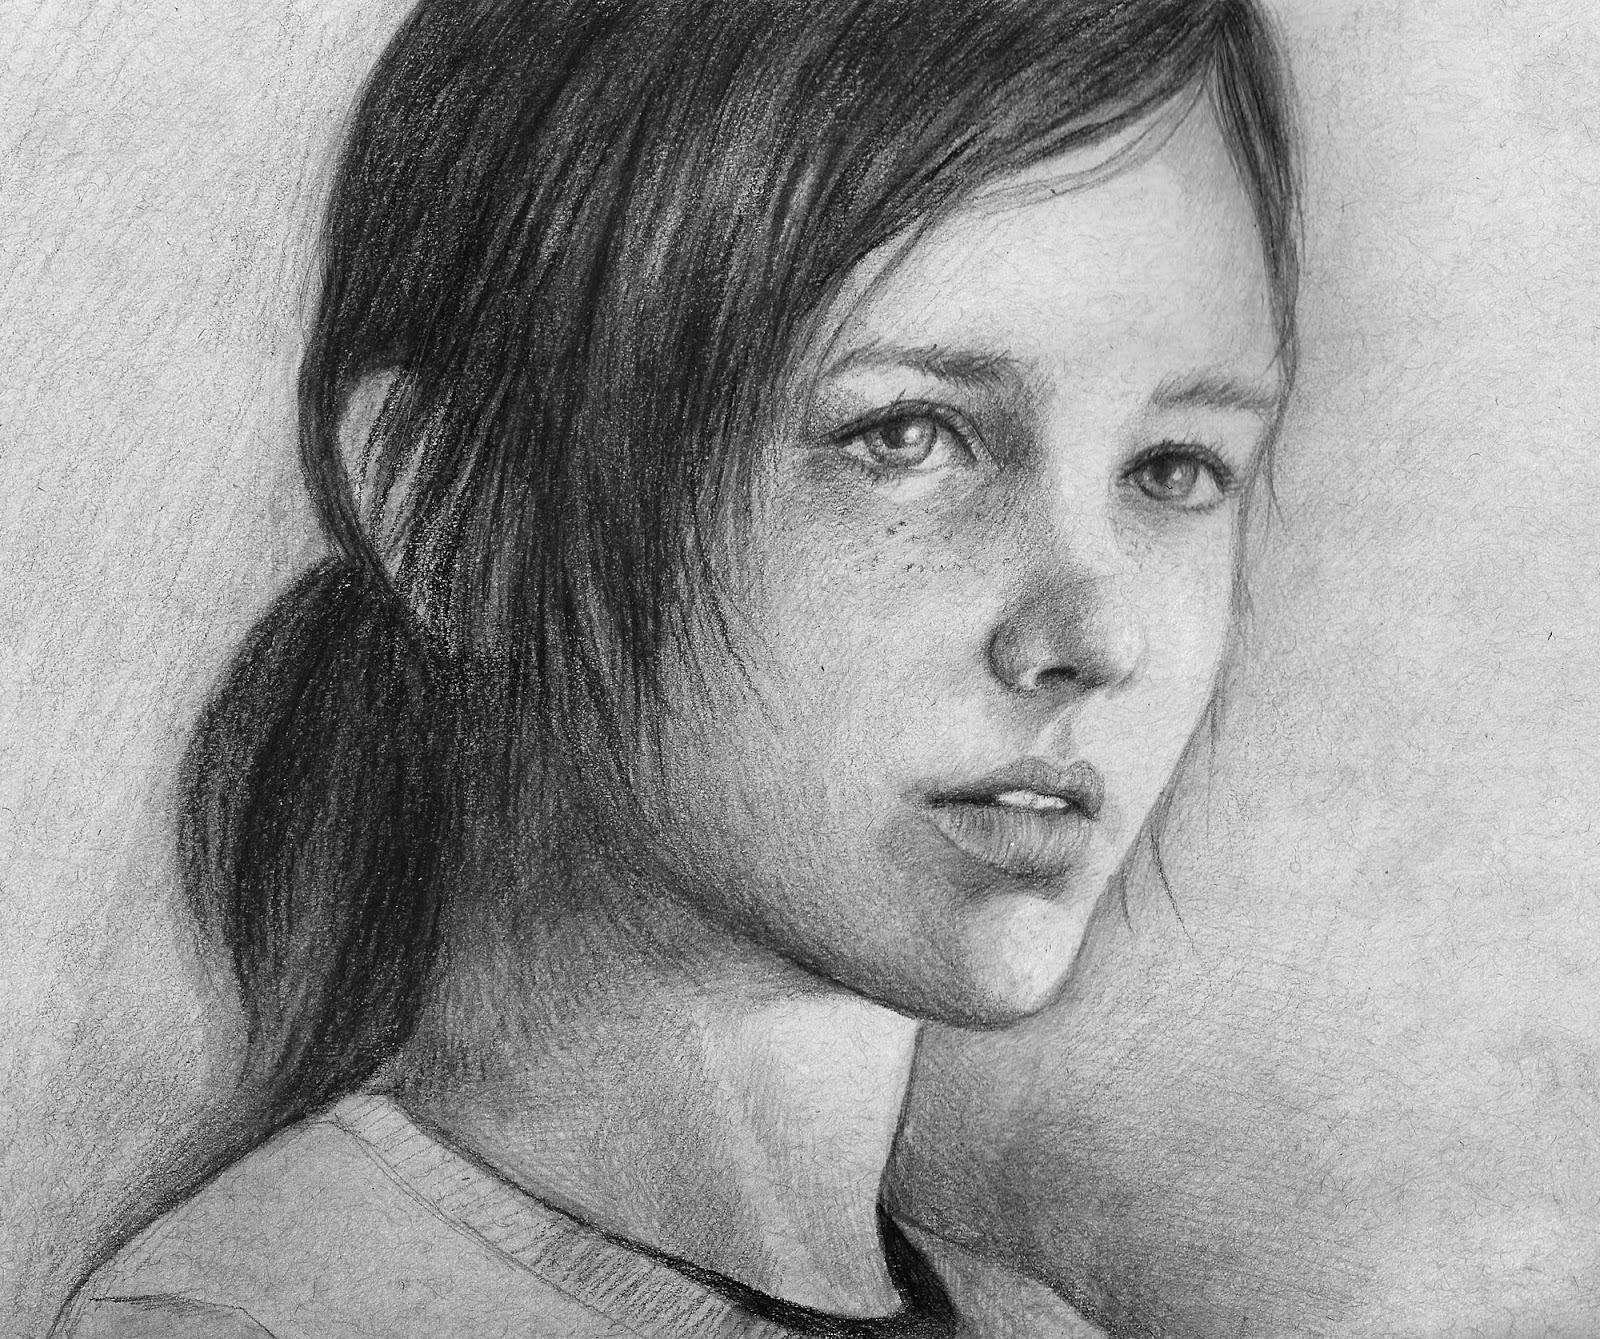 Ellie Drawing Drawing of Ellie in The Last